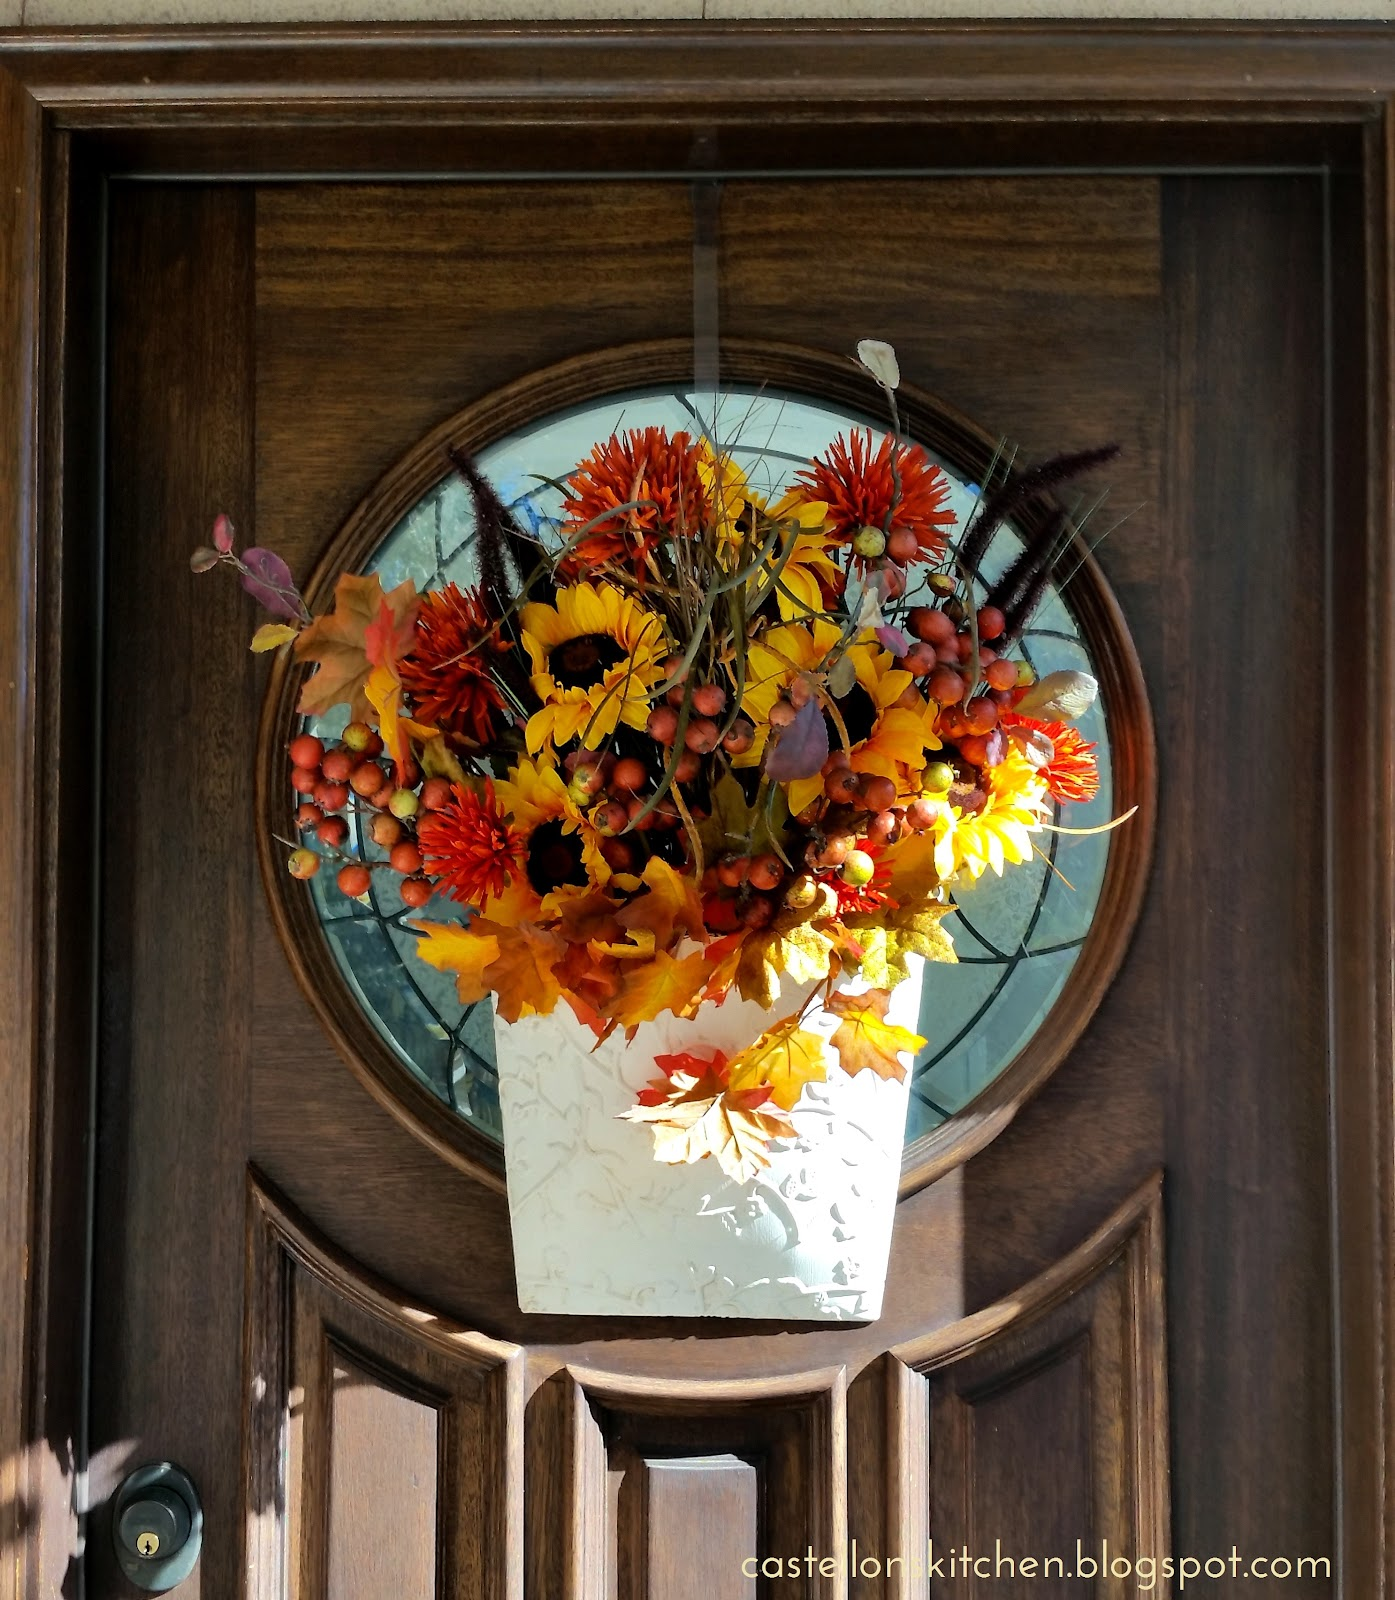 Adventures In Decorating Our 2015 Fall Kitchen: Castellon's Kitchen: Fall Decorating 2015